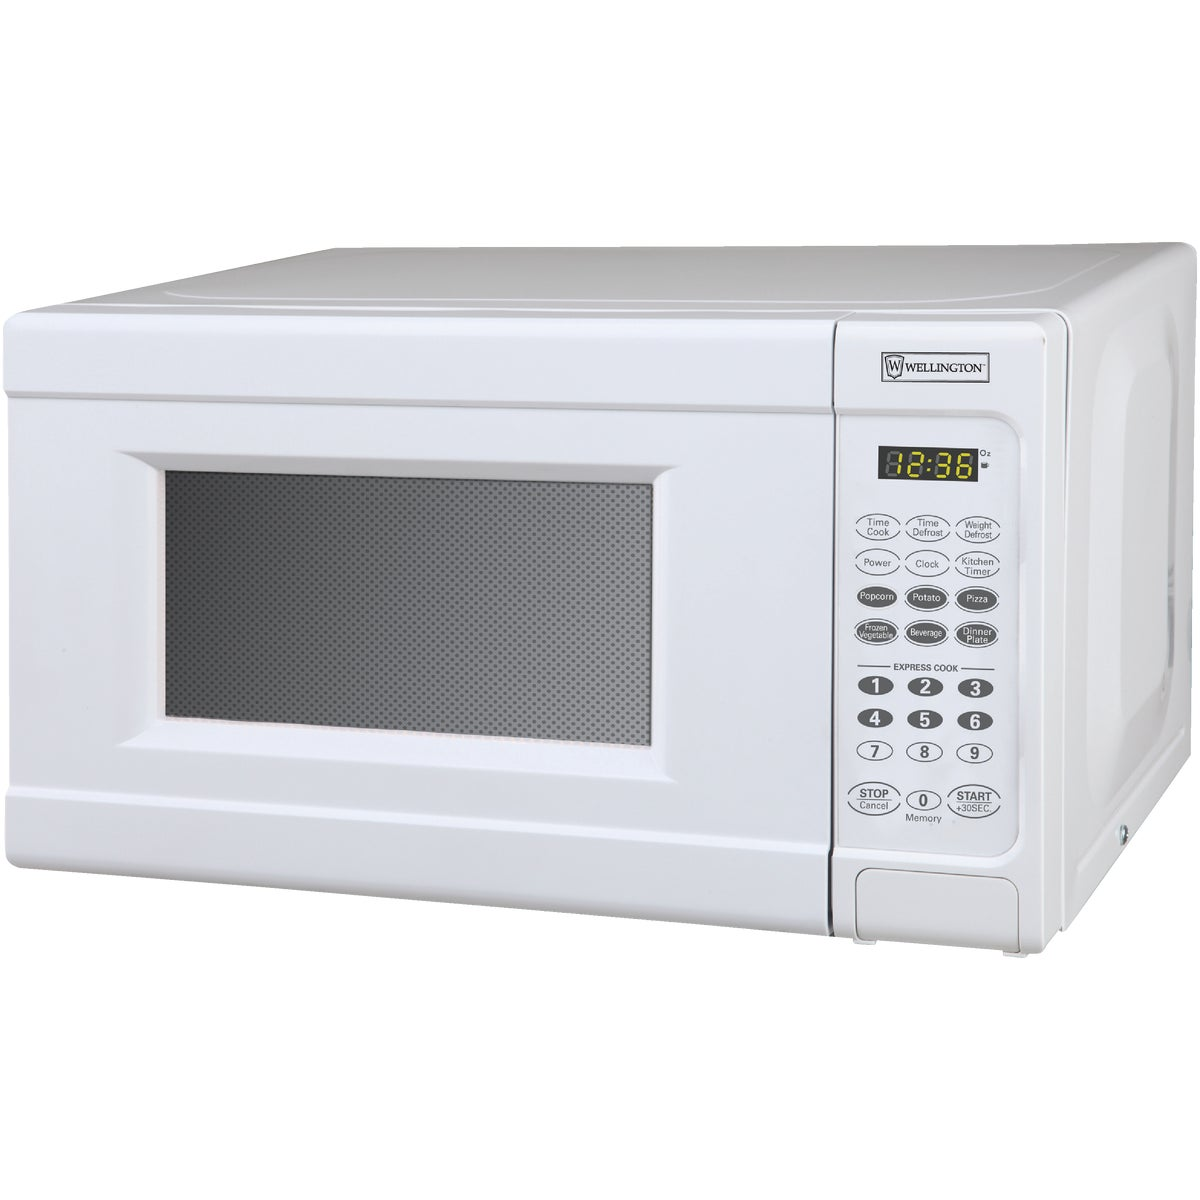 WHITE 0.7CUFT MICROWAVE - WWM07 by Wellington